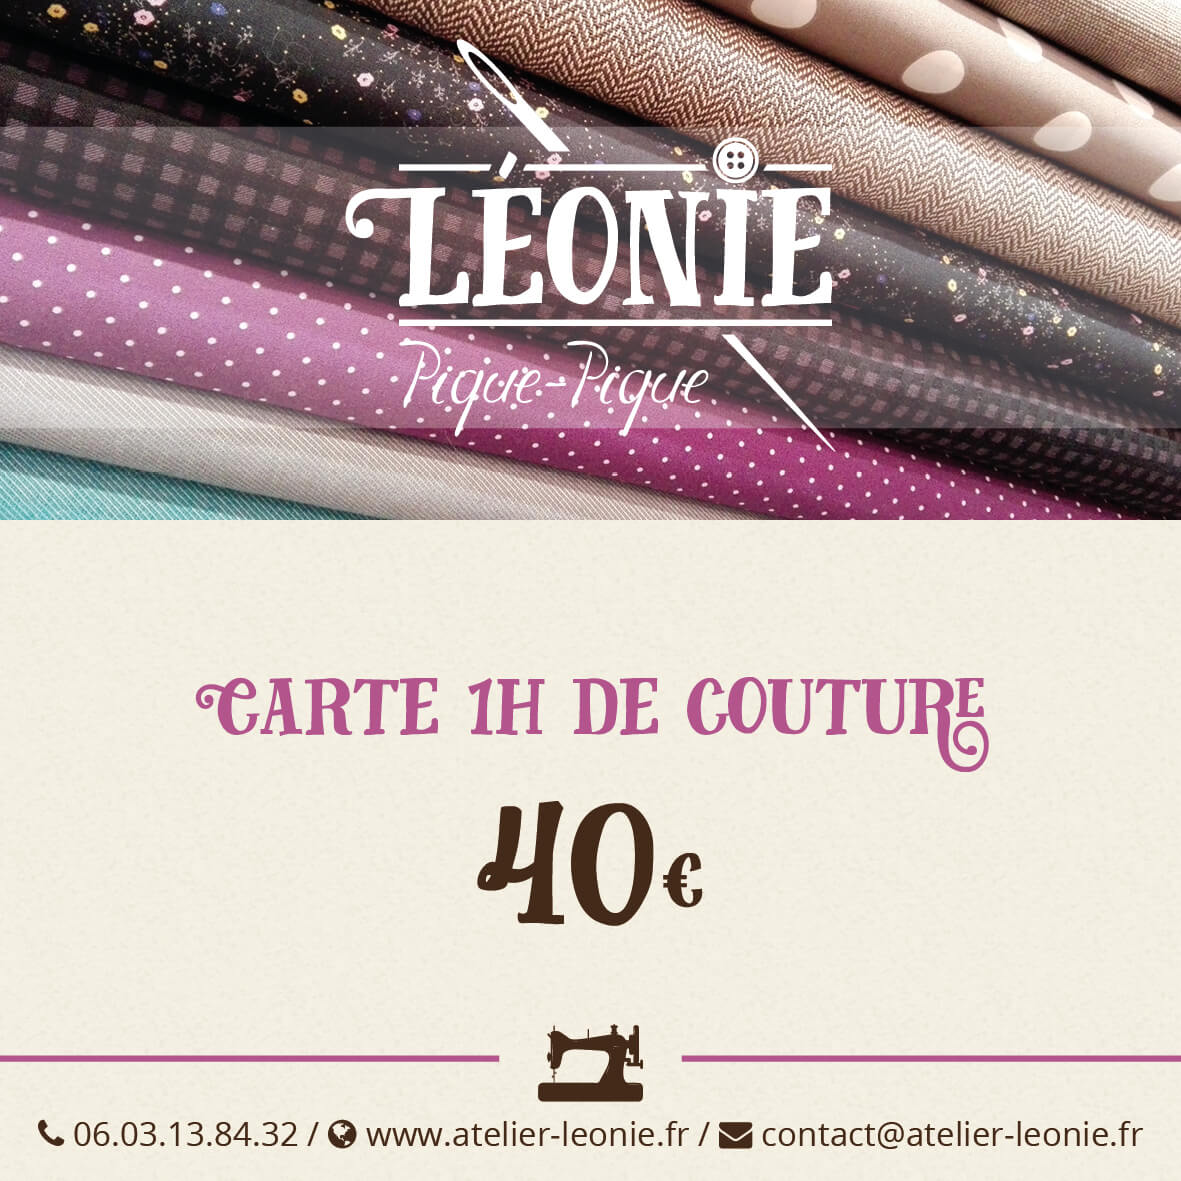 carte de cours de couture l onie pique pique paris 15 do it yourself. Black Bedroom Furniture Sets. Home Design Ideas